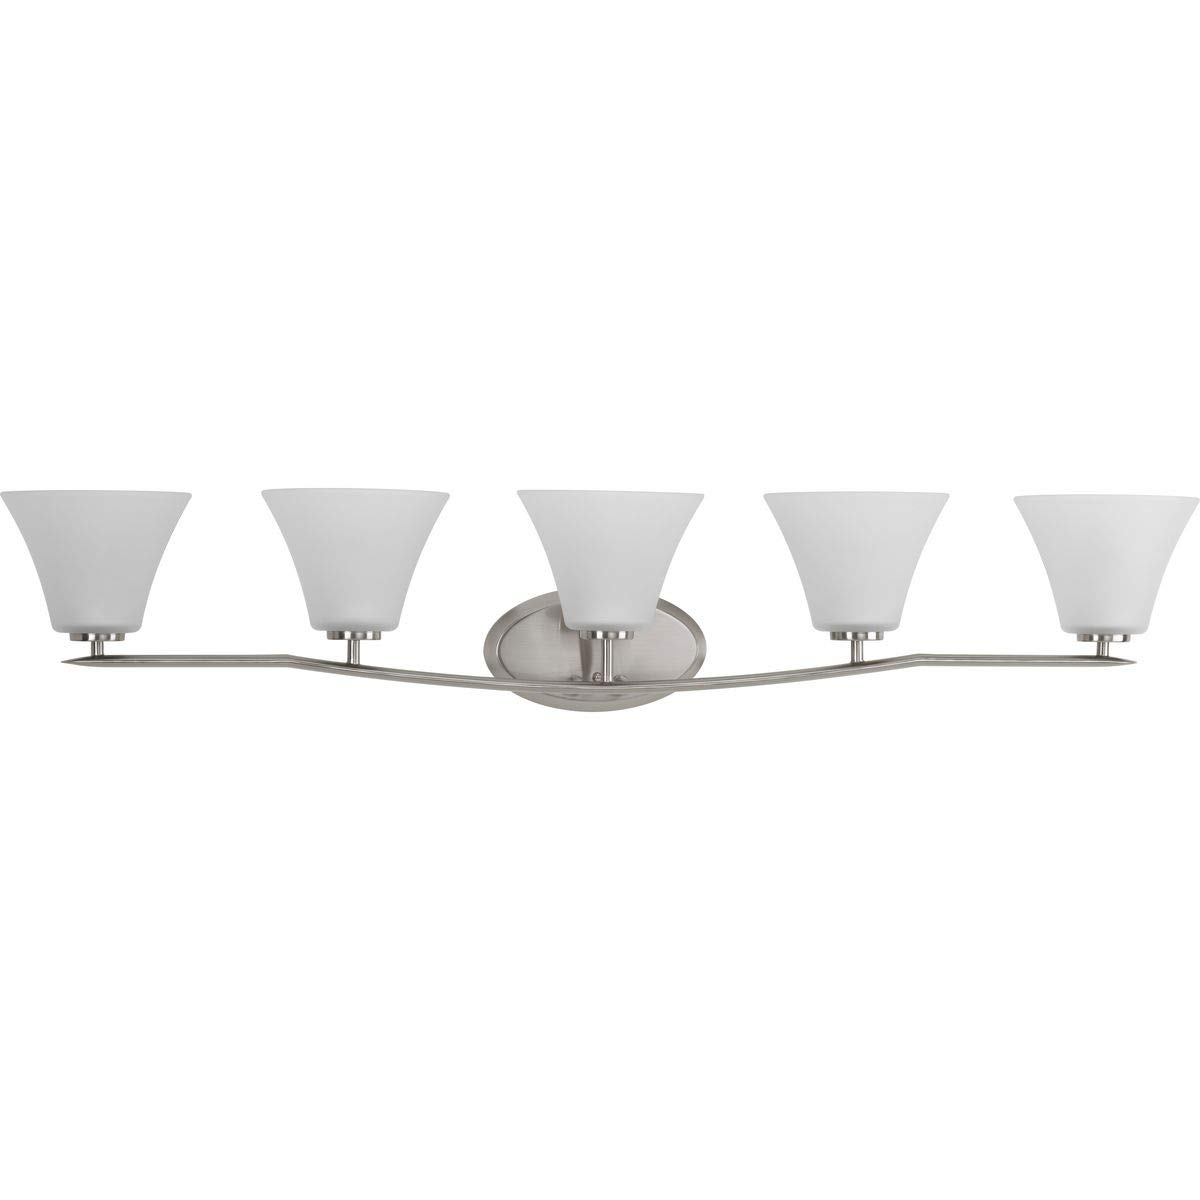 Z-Lite 1900-4V Tidal Four Light Vanity Light, Metal Frame, Brushed Nickel Finish and Matte Opal Shade of Glass Material